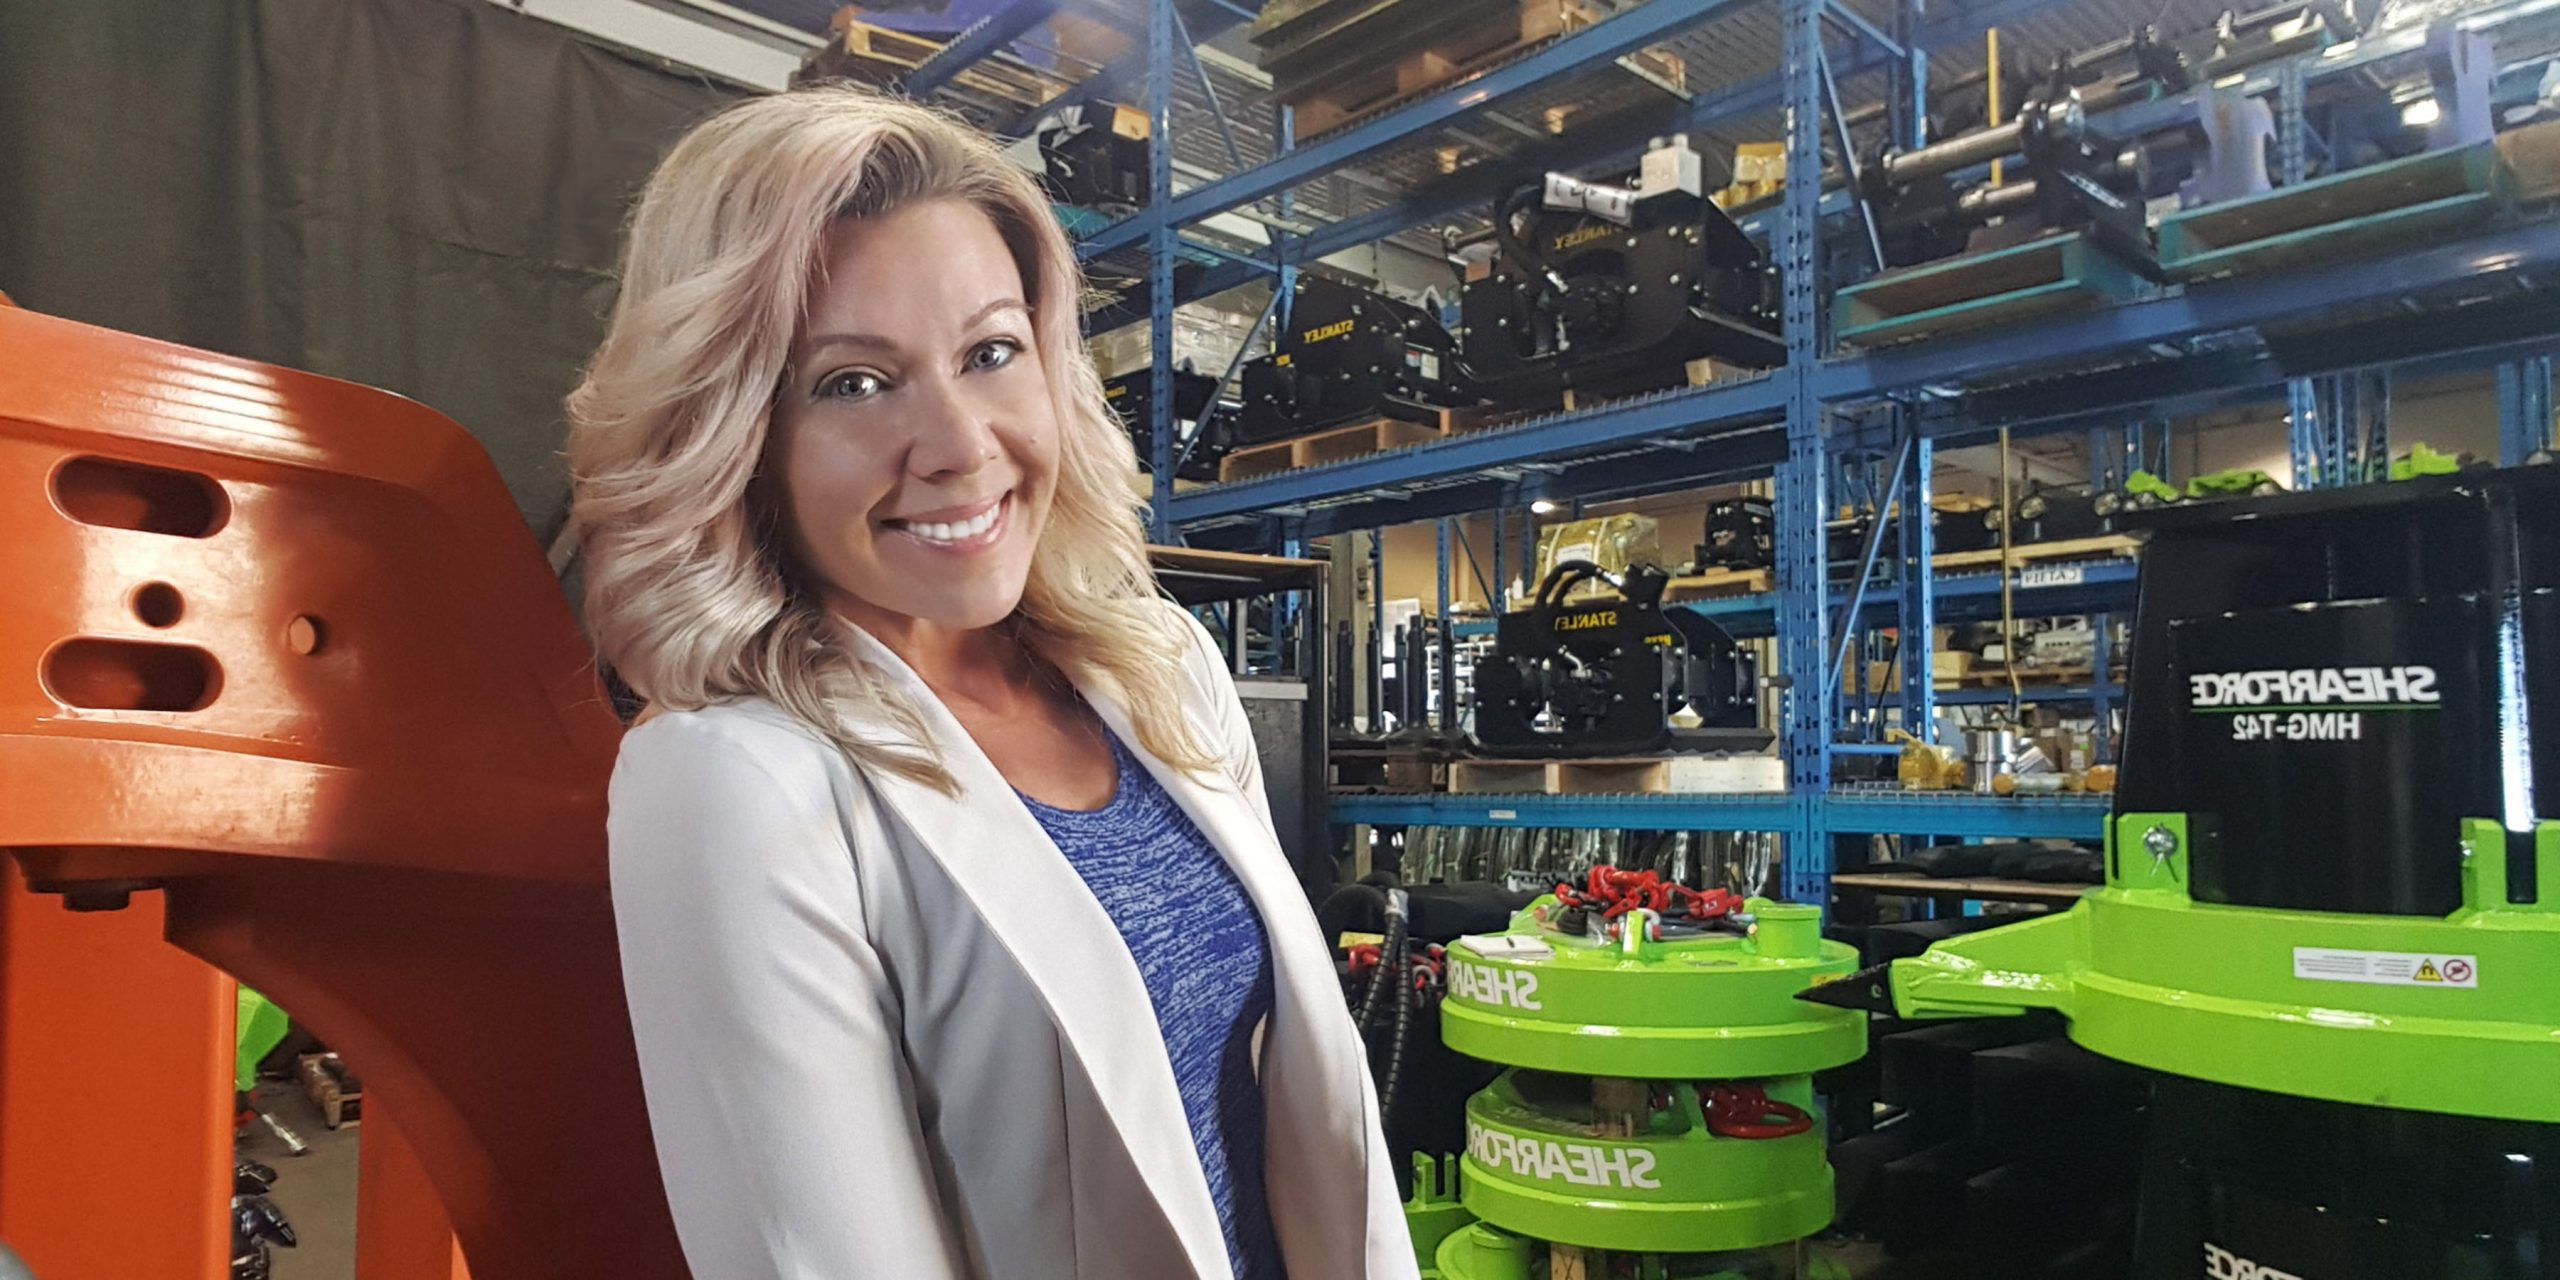 A blonde woman stands in a warehouse smiling.